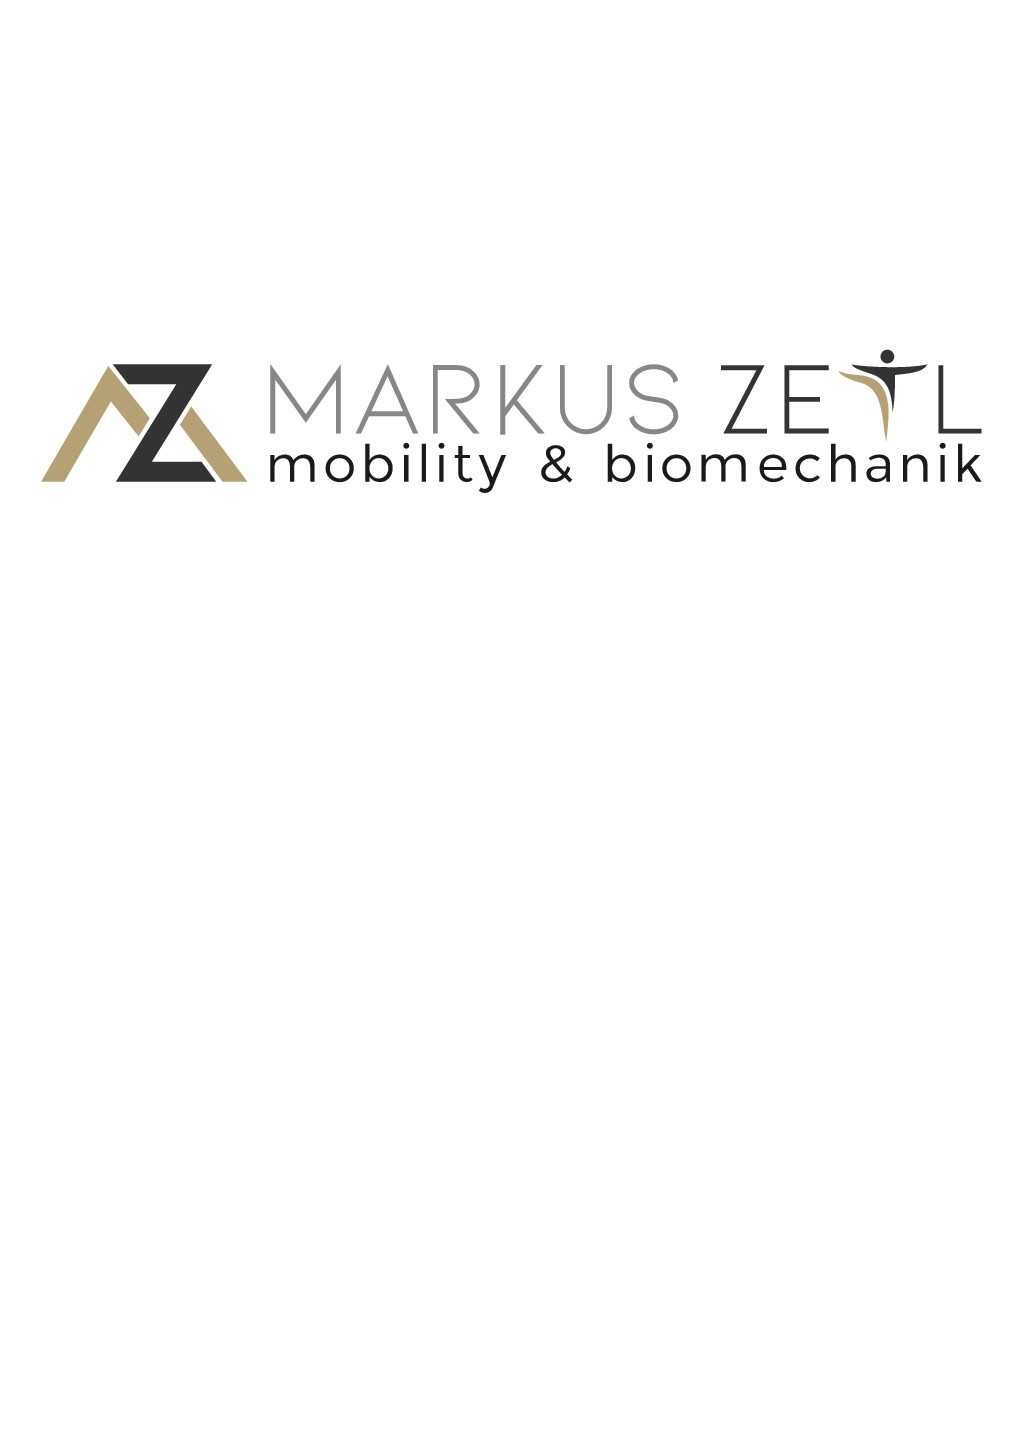 logo for MARKUS ZETTL, painless and movement therapiest/teacher, mobility&biomechanik coach